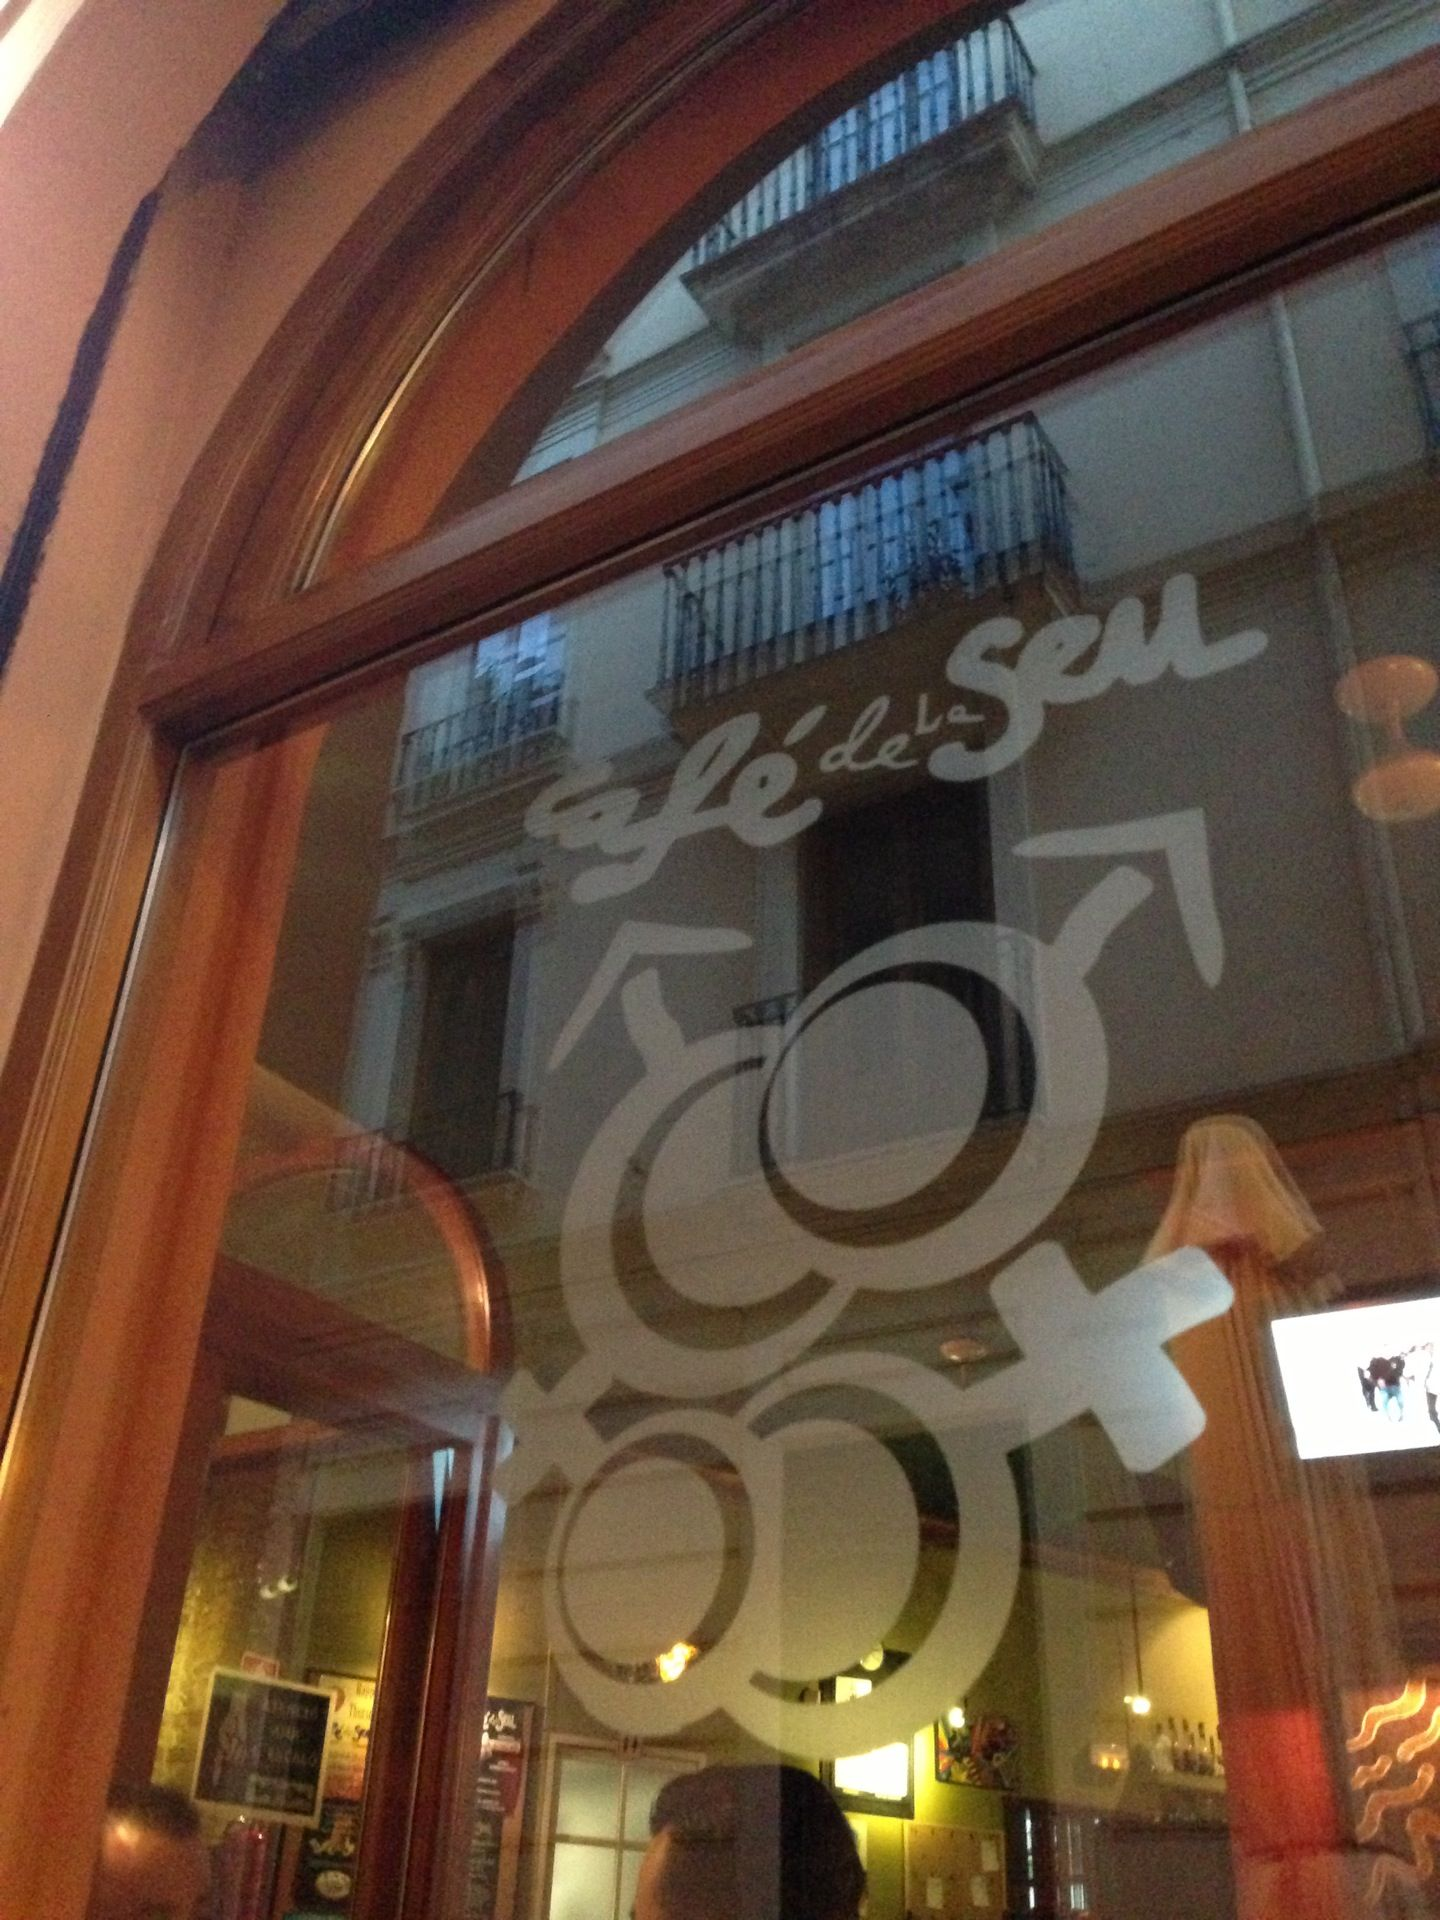 Café de la Seu (Gay Friendly Cafe / Bar)